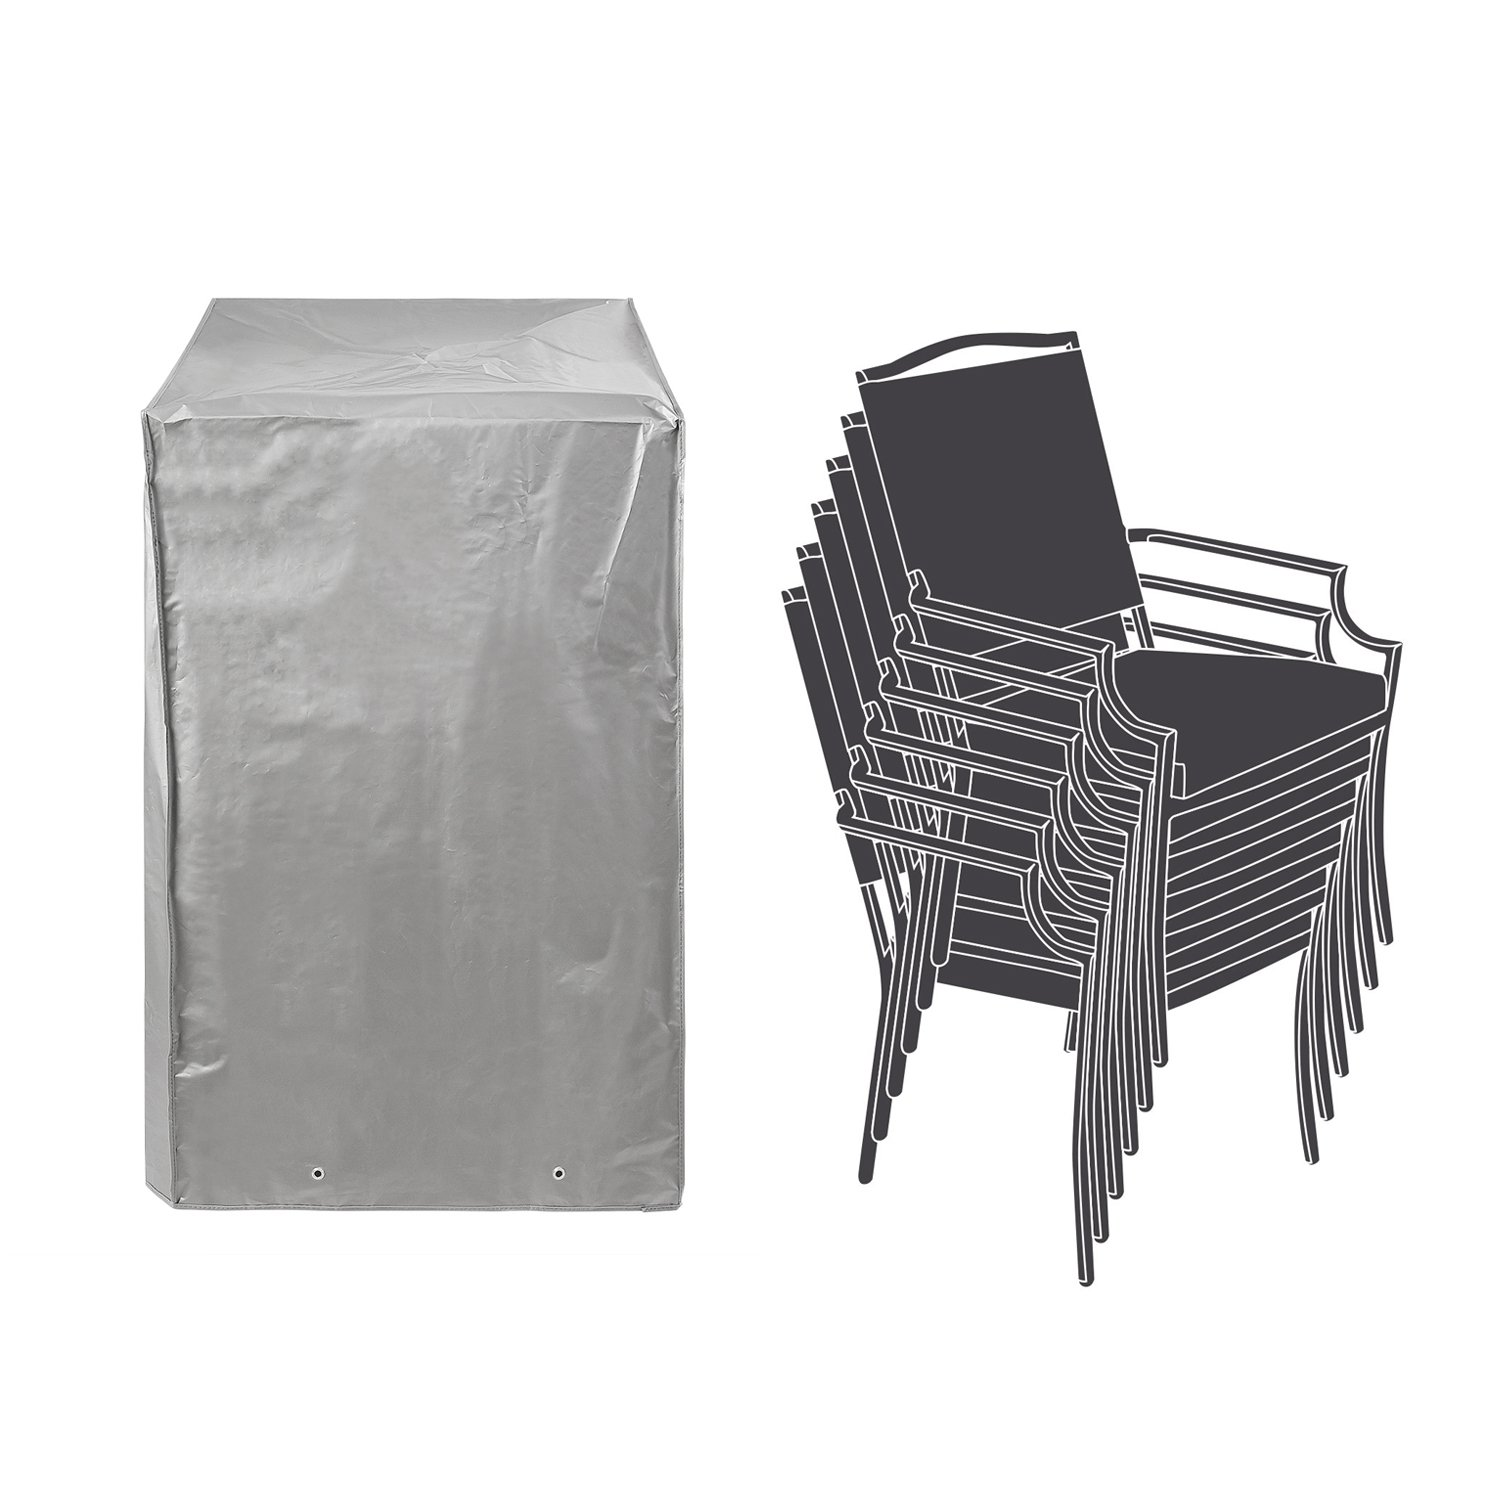 Patio Stackable Chairs Cover Patio Chair Covers Waterproof Durable Grey 26'' L x 34'' D x 46'' H